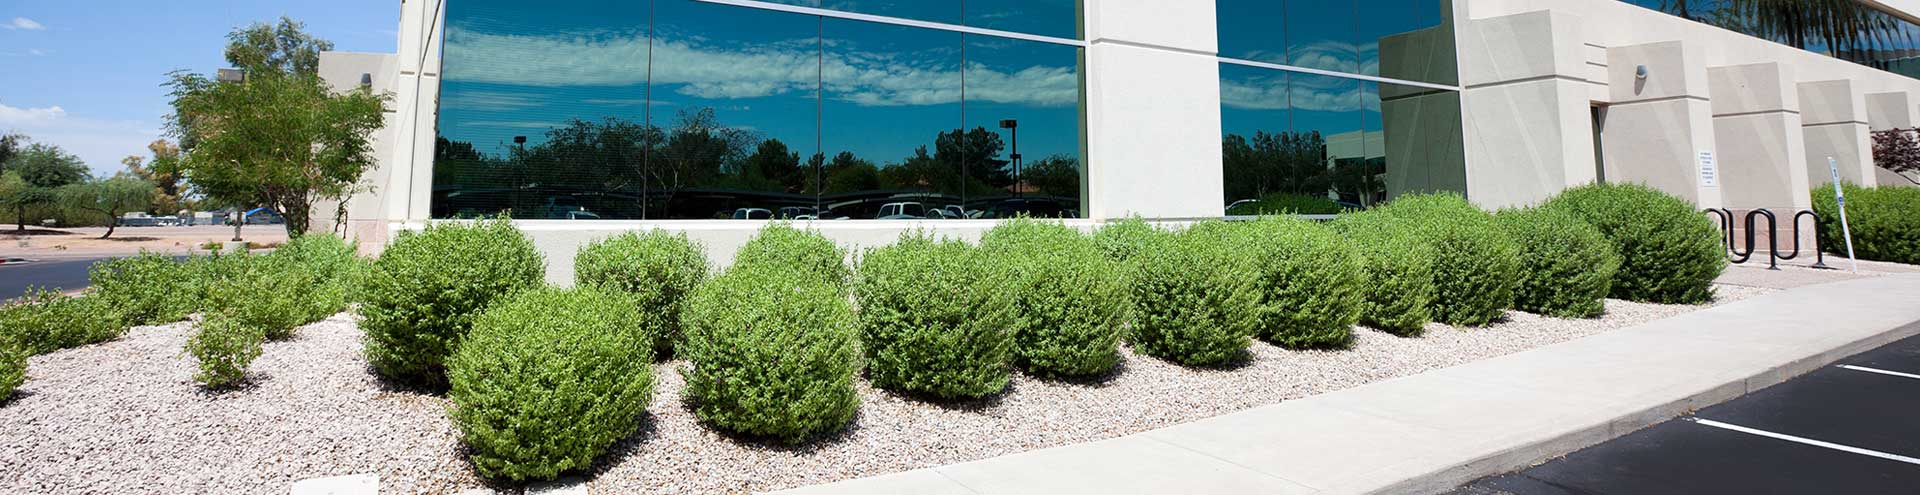 Bushes and shrubs in front of an office building with tinted glass windows.